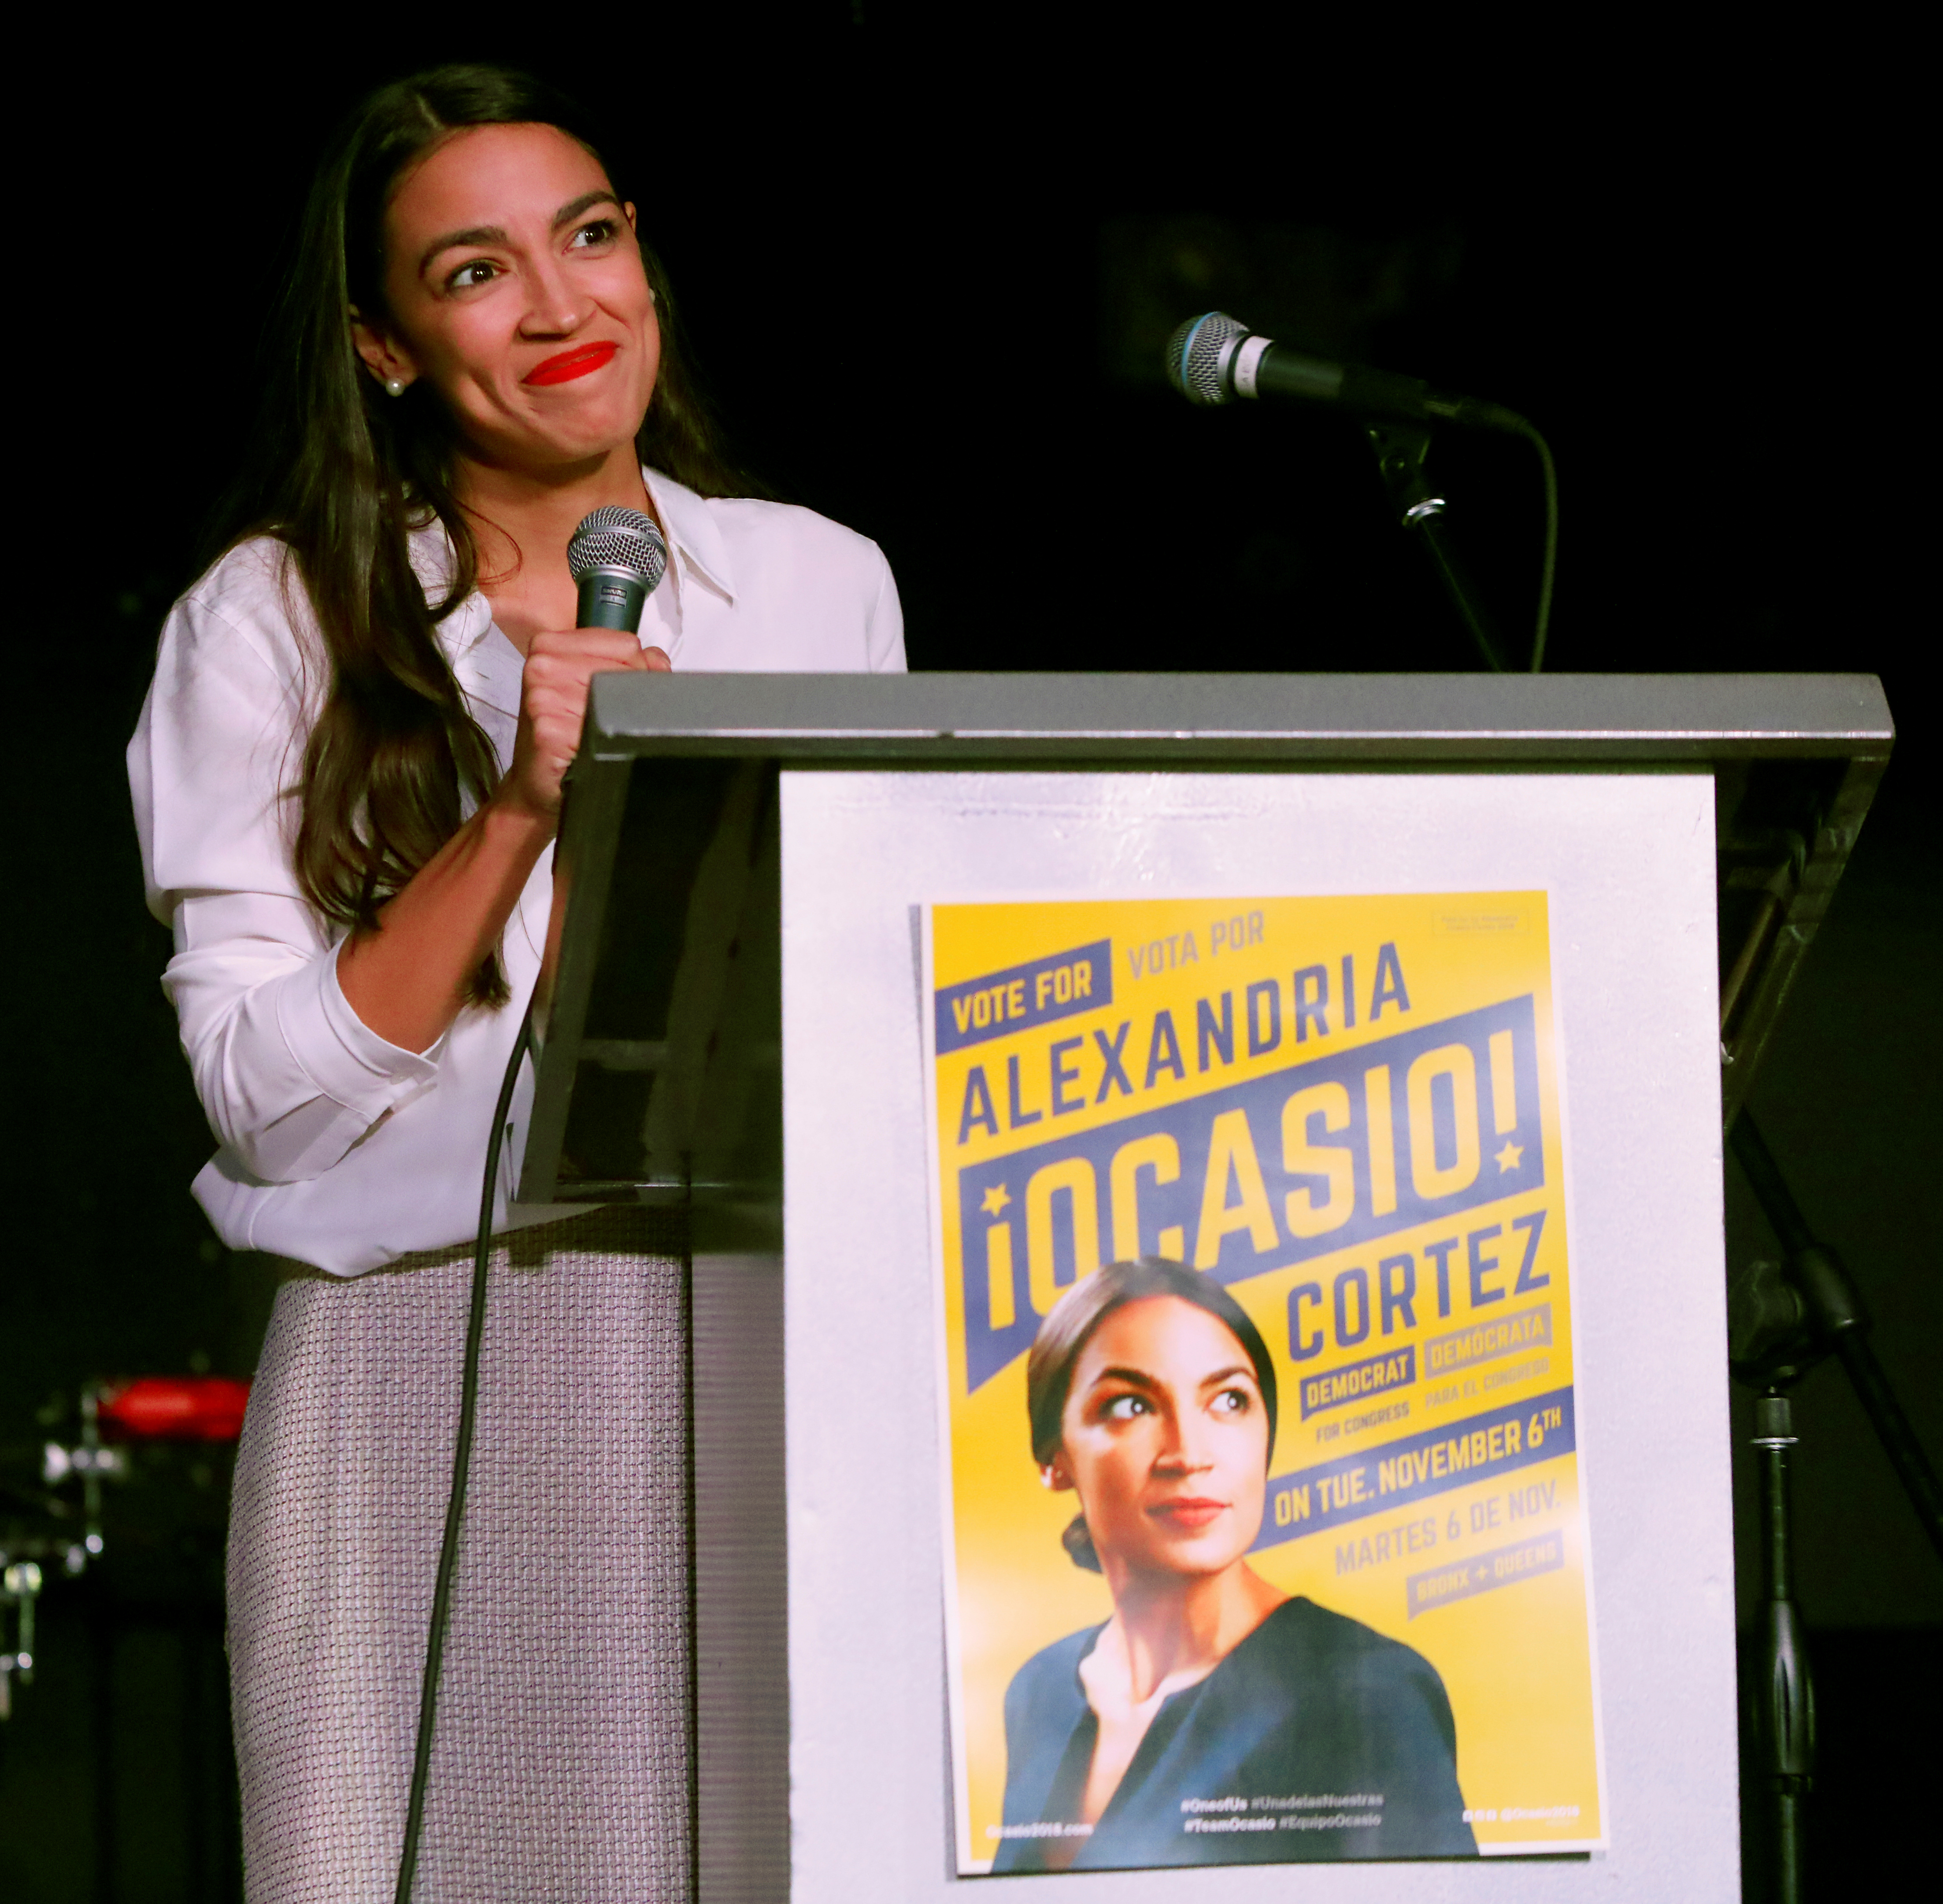 Democratic congressional candidate Alexandria Ocasio-Cortez speaks at her midterm election night party in New York City